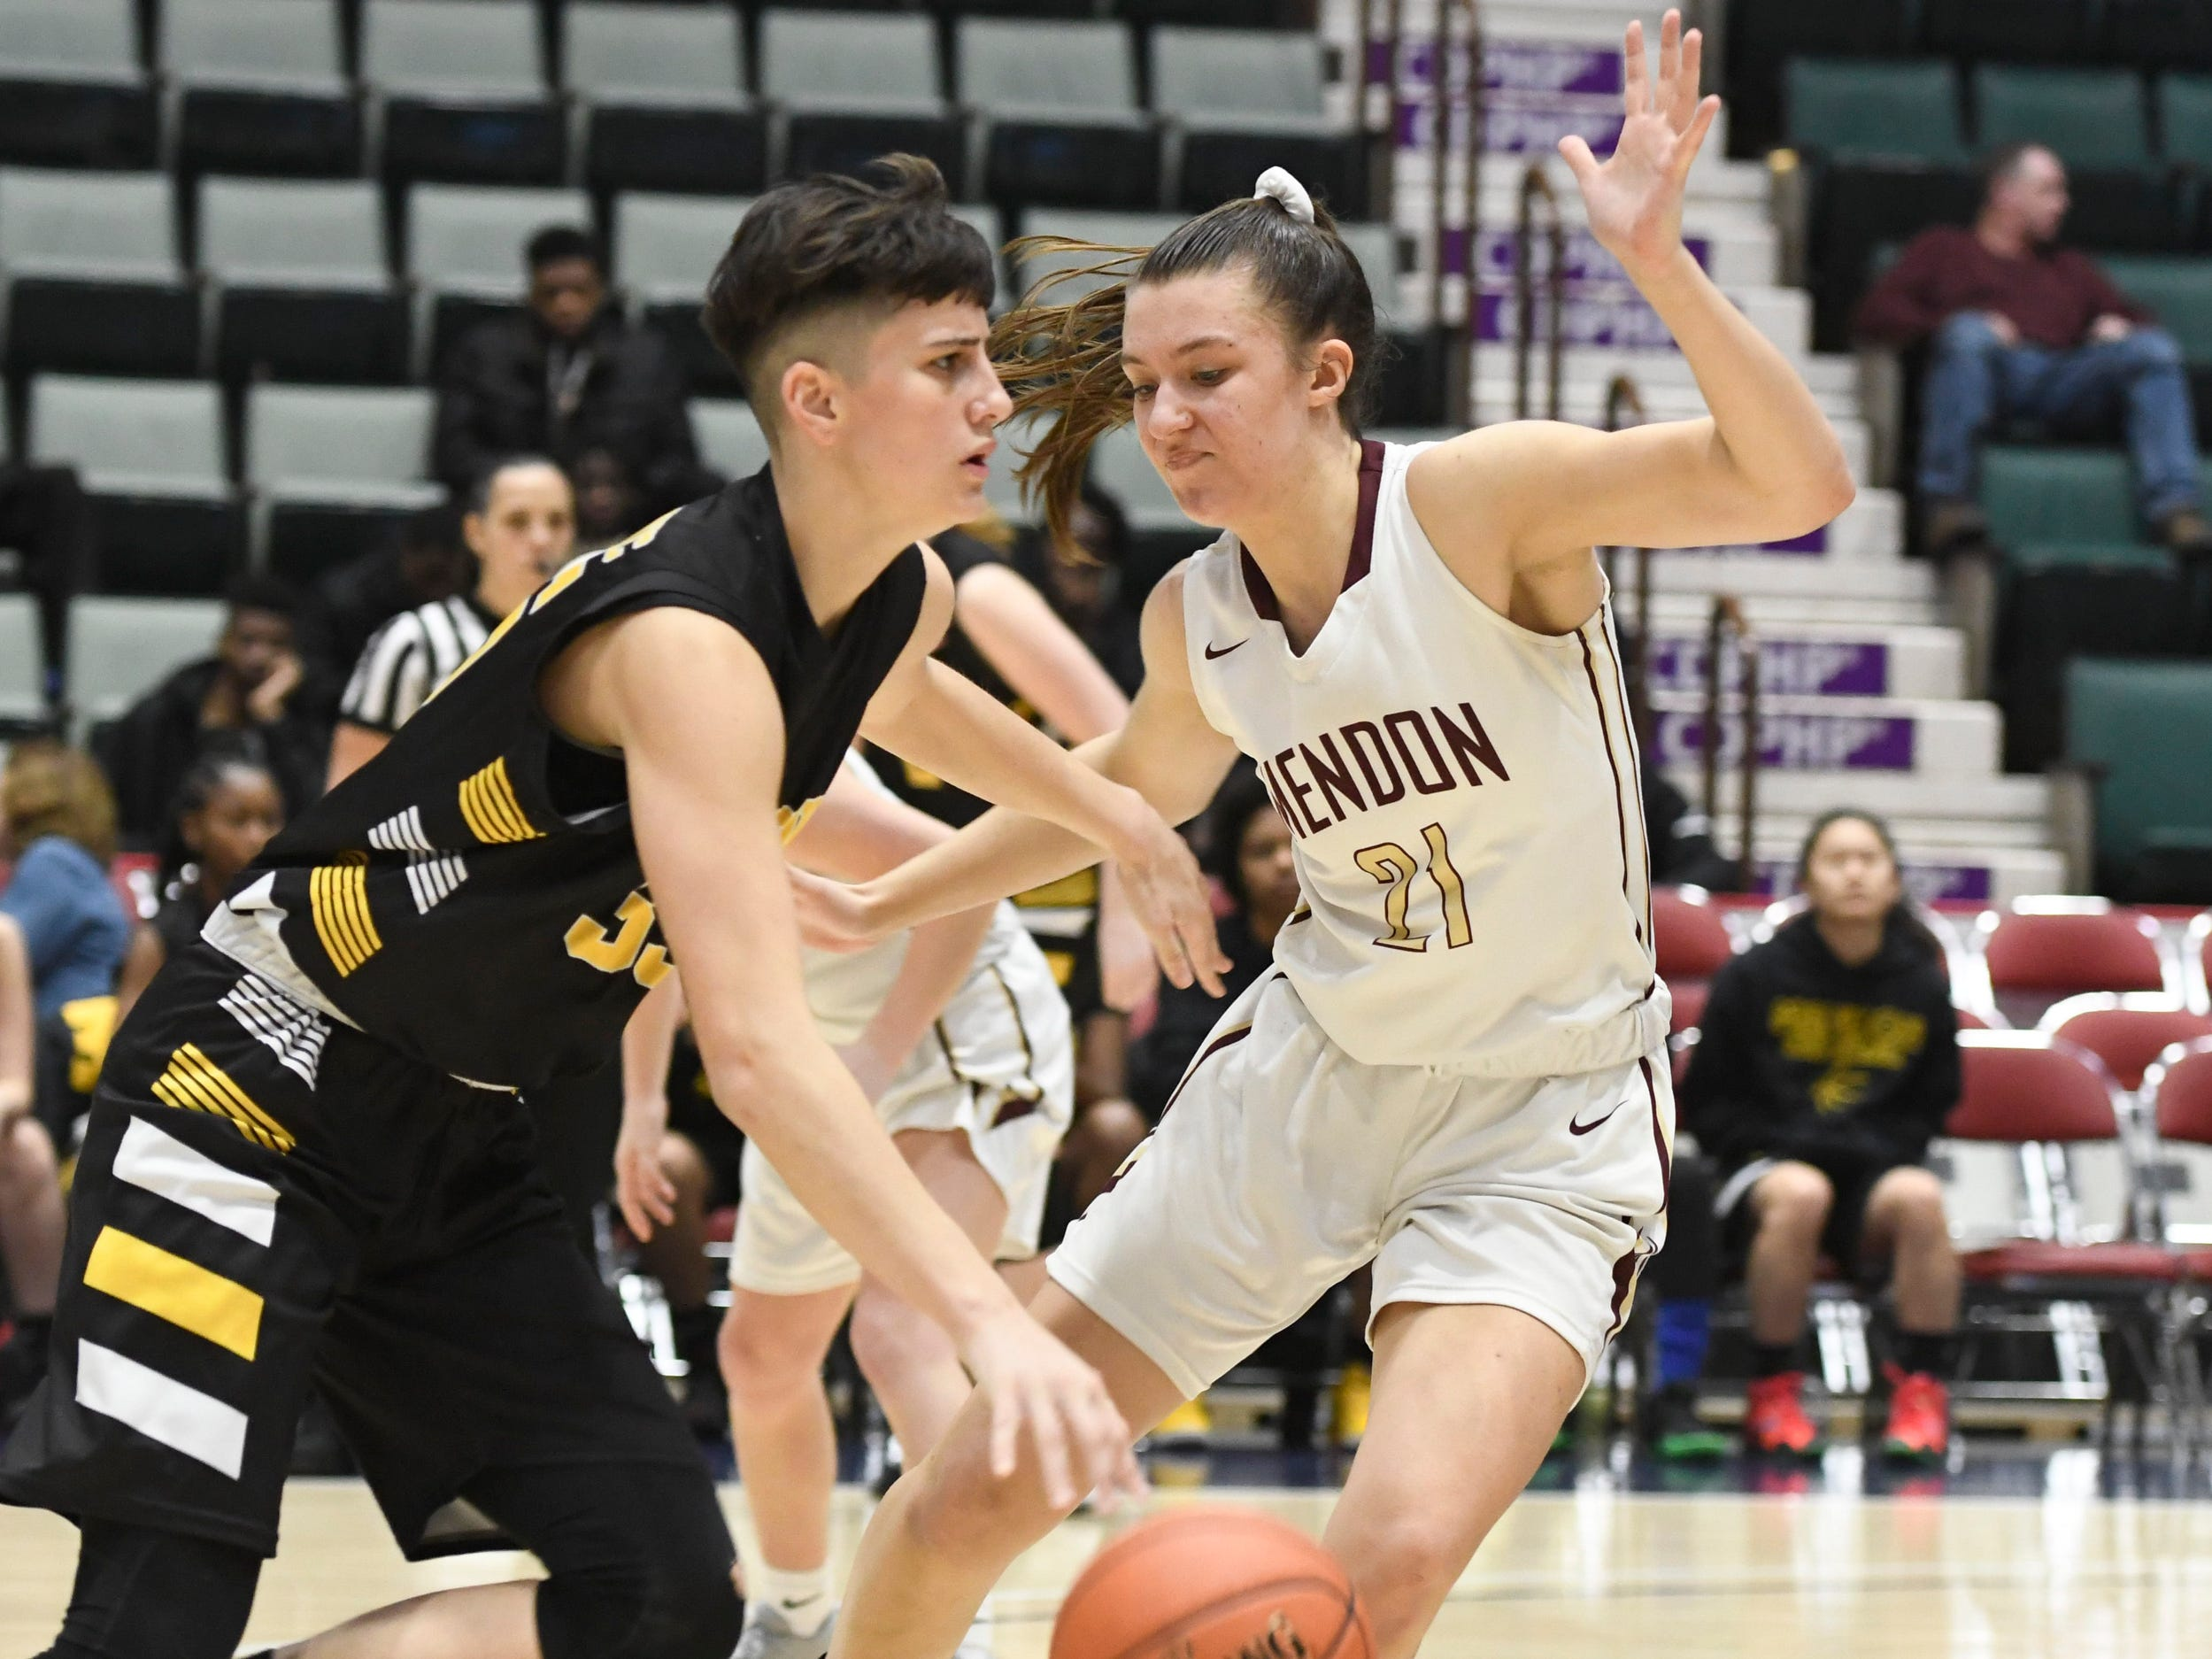 Pittsford Mendon's Alana Fursman guards James Madison's Melinda Feratovic during their Girls Class A Federation Tournament of Champions semifinal at Cool Insuring Arena on Friday, Mar. 23, 2019, in Glens Falls.